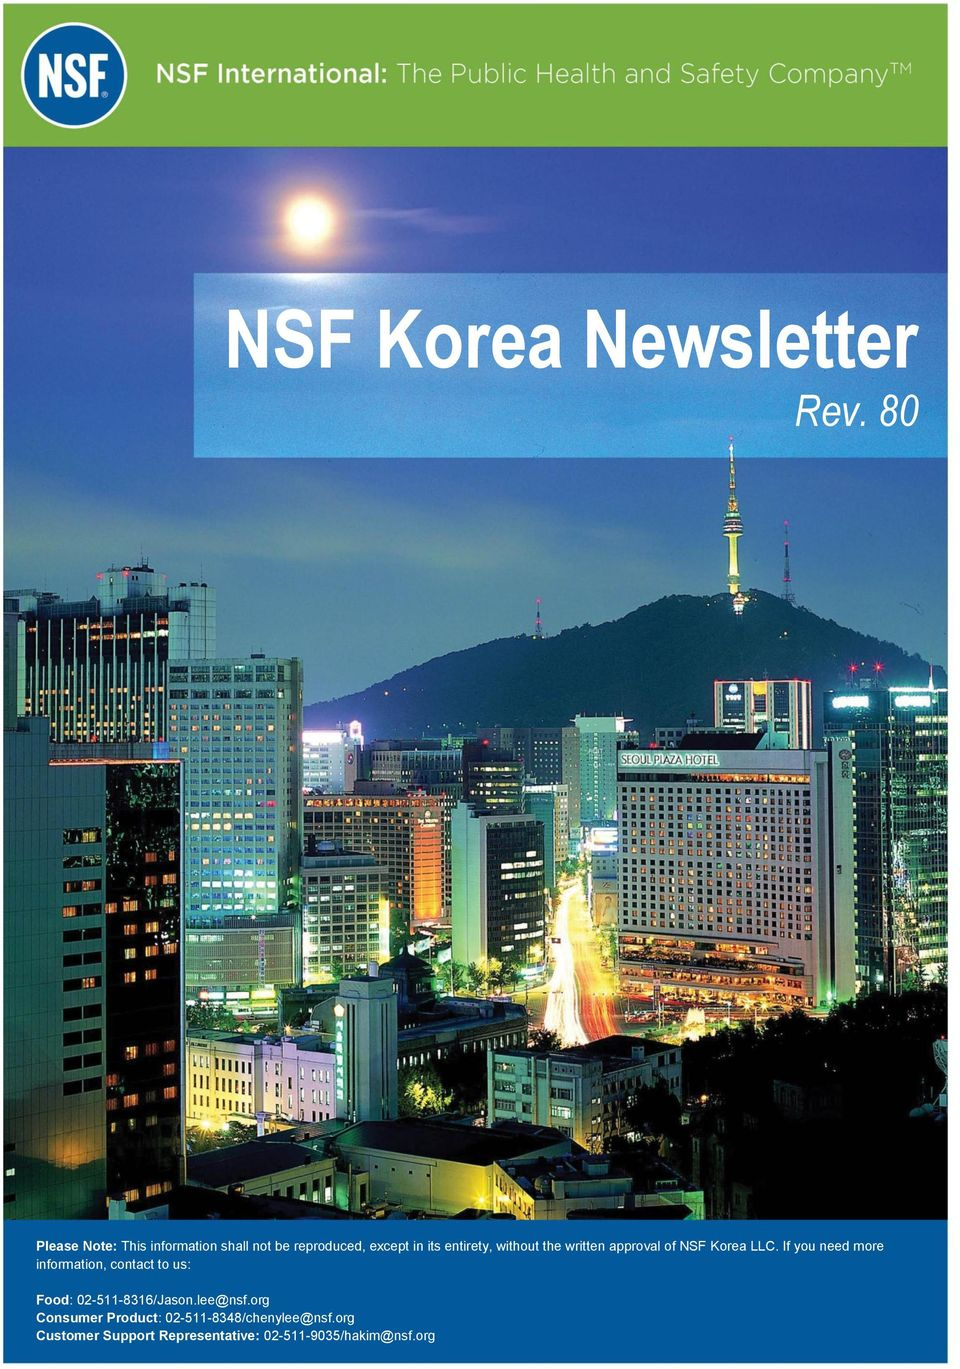 without the written approval of NSF Korea LLC.